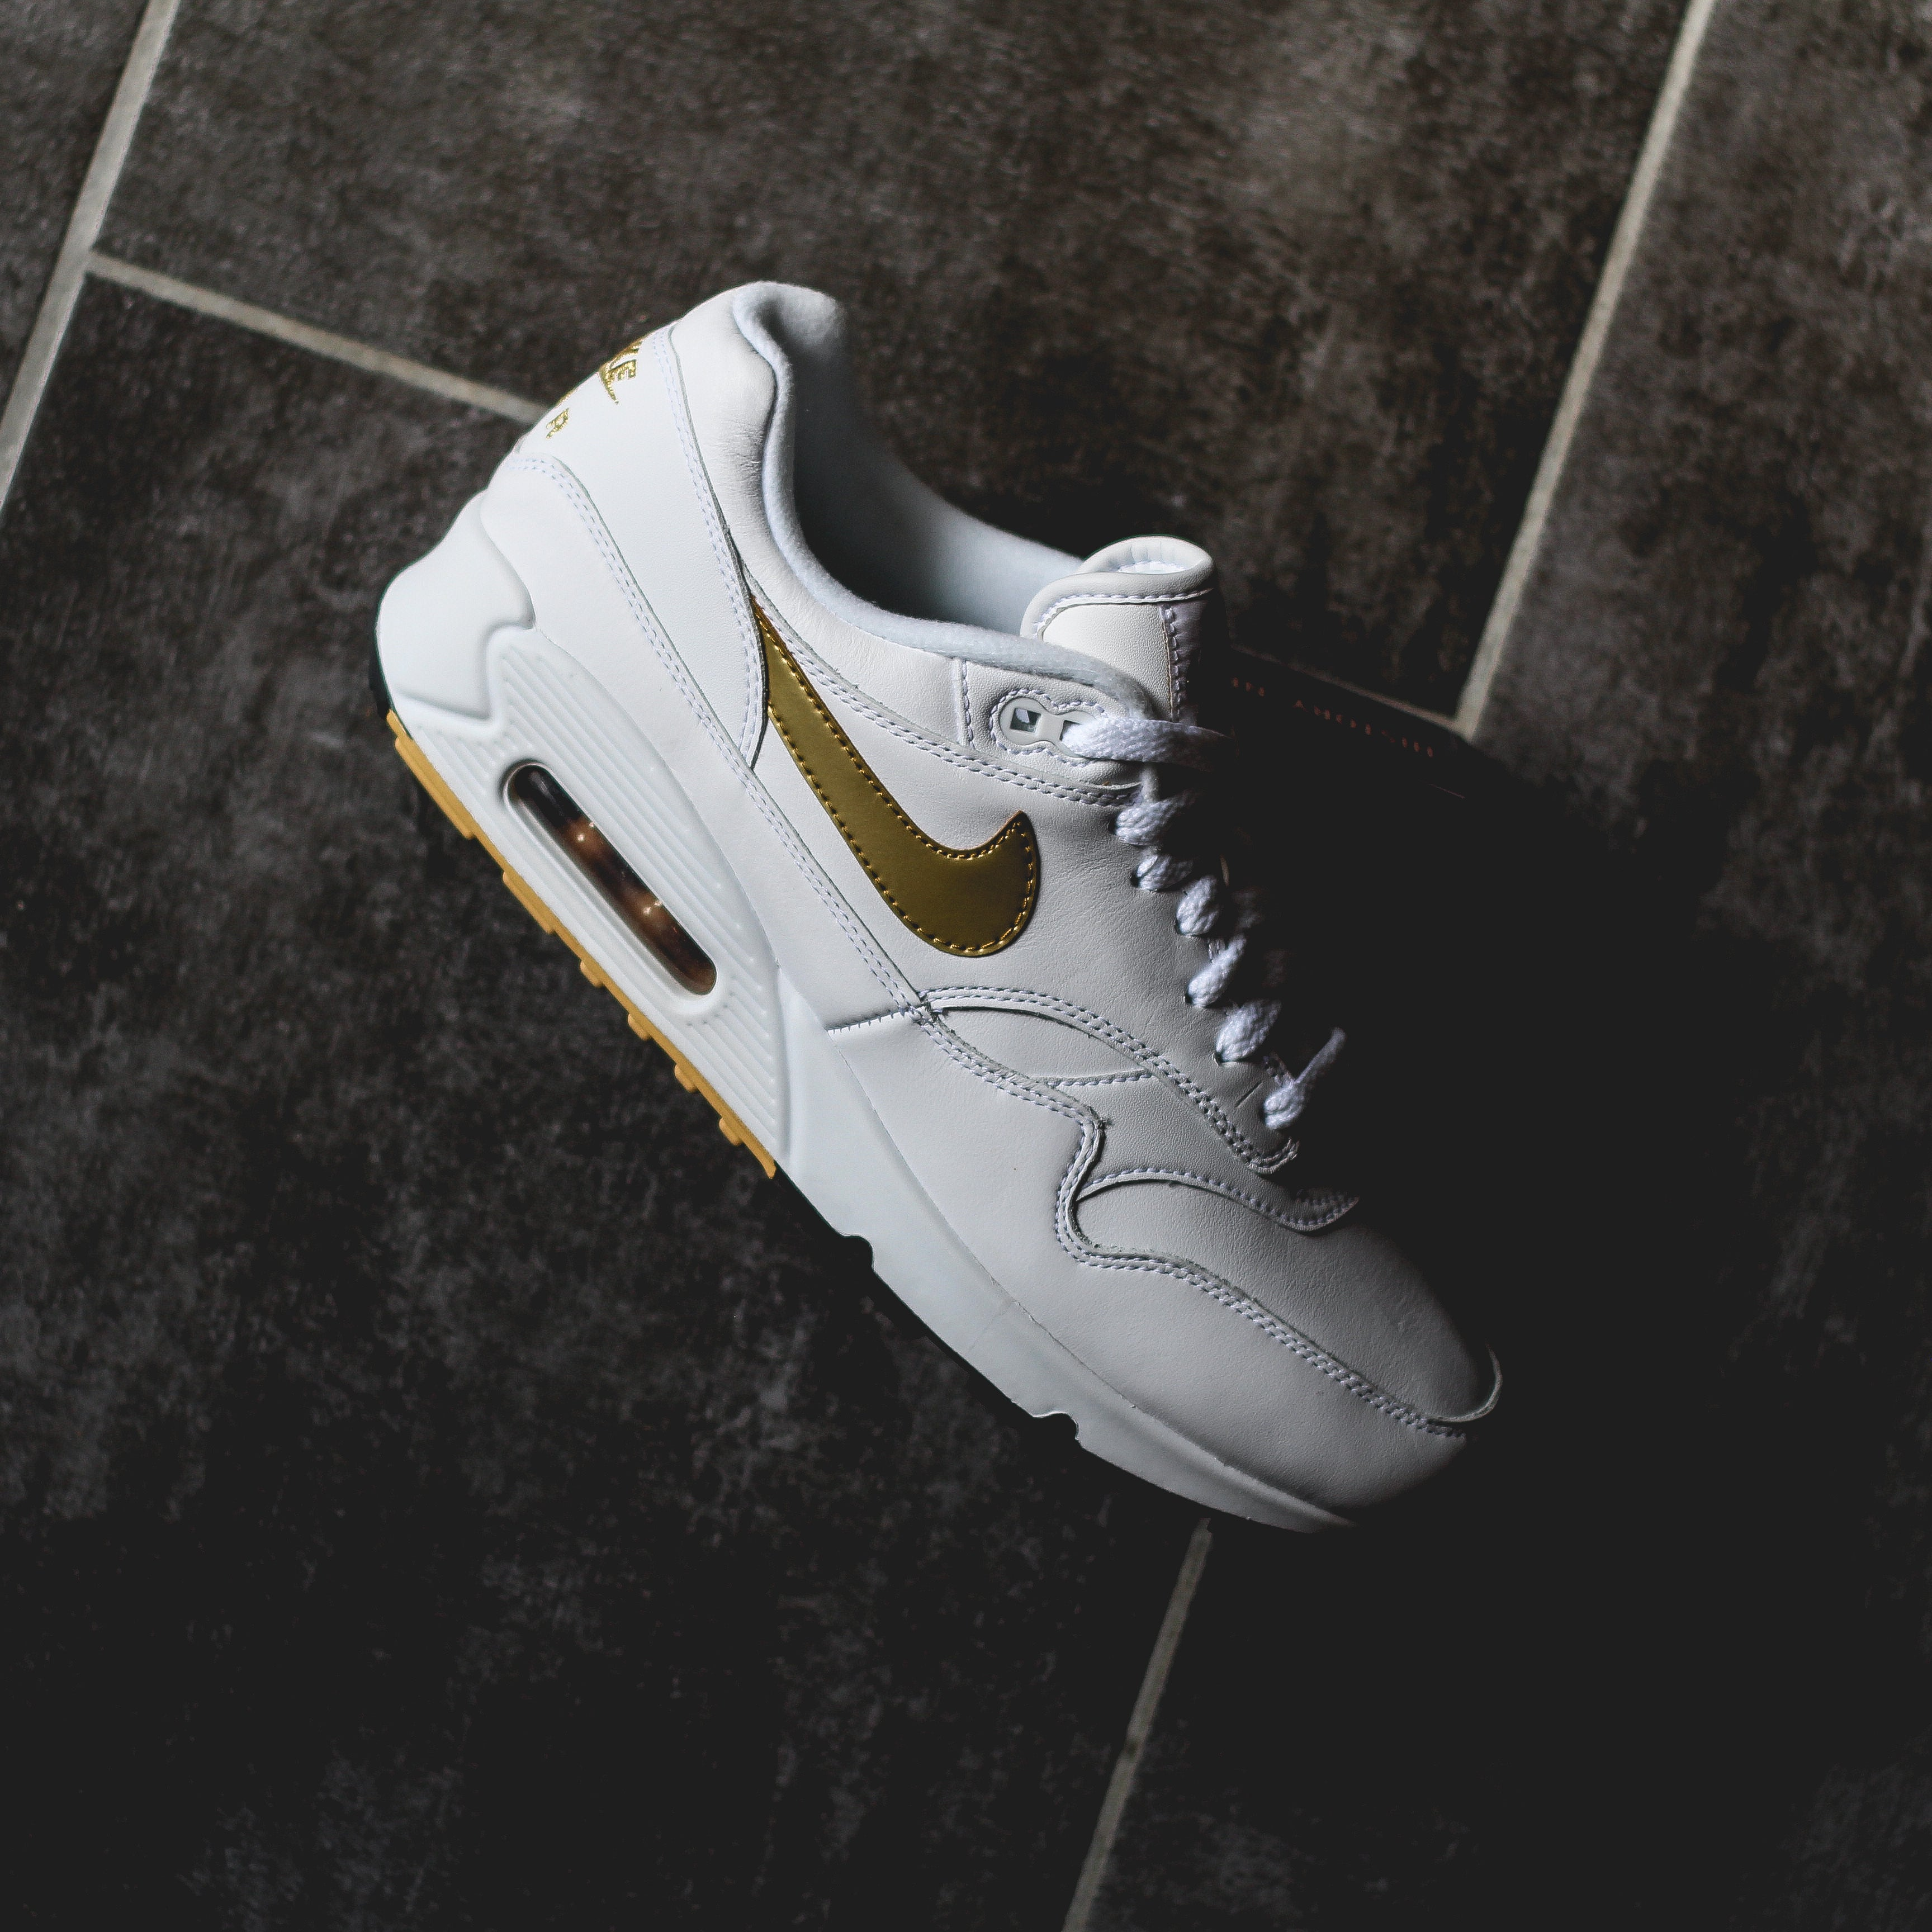 save off c5e8a d16e7 NIKE Air MAx 901 - Metallic Gold – History of New York Powered by Sneaker  Lounge